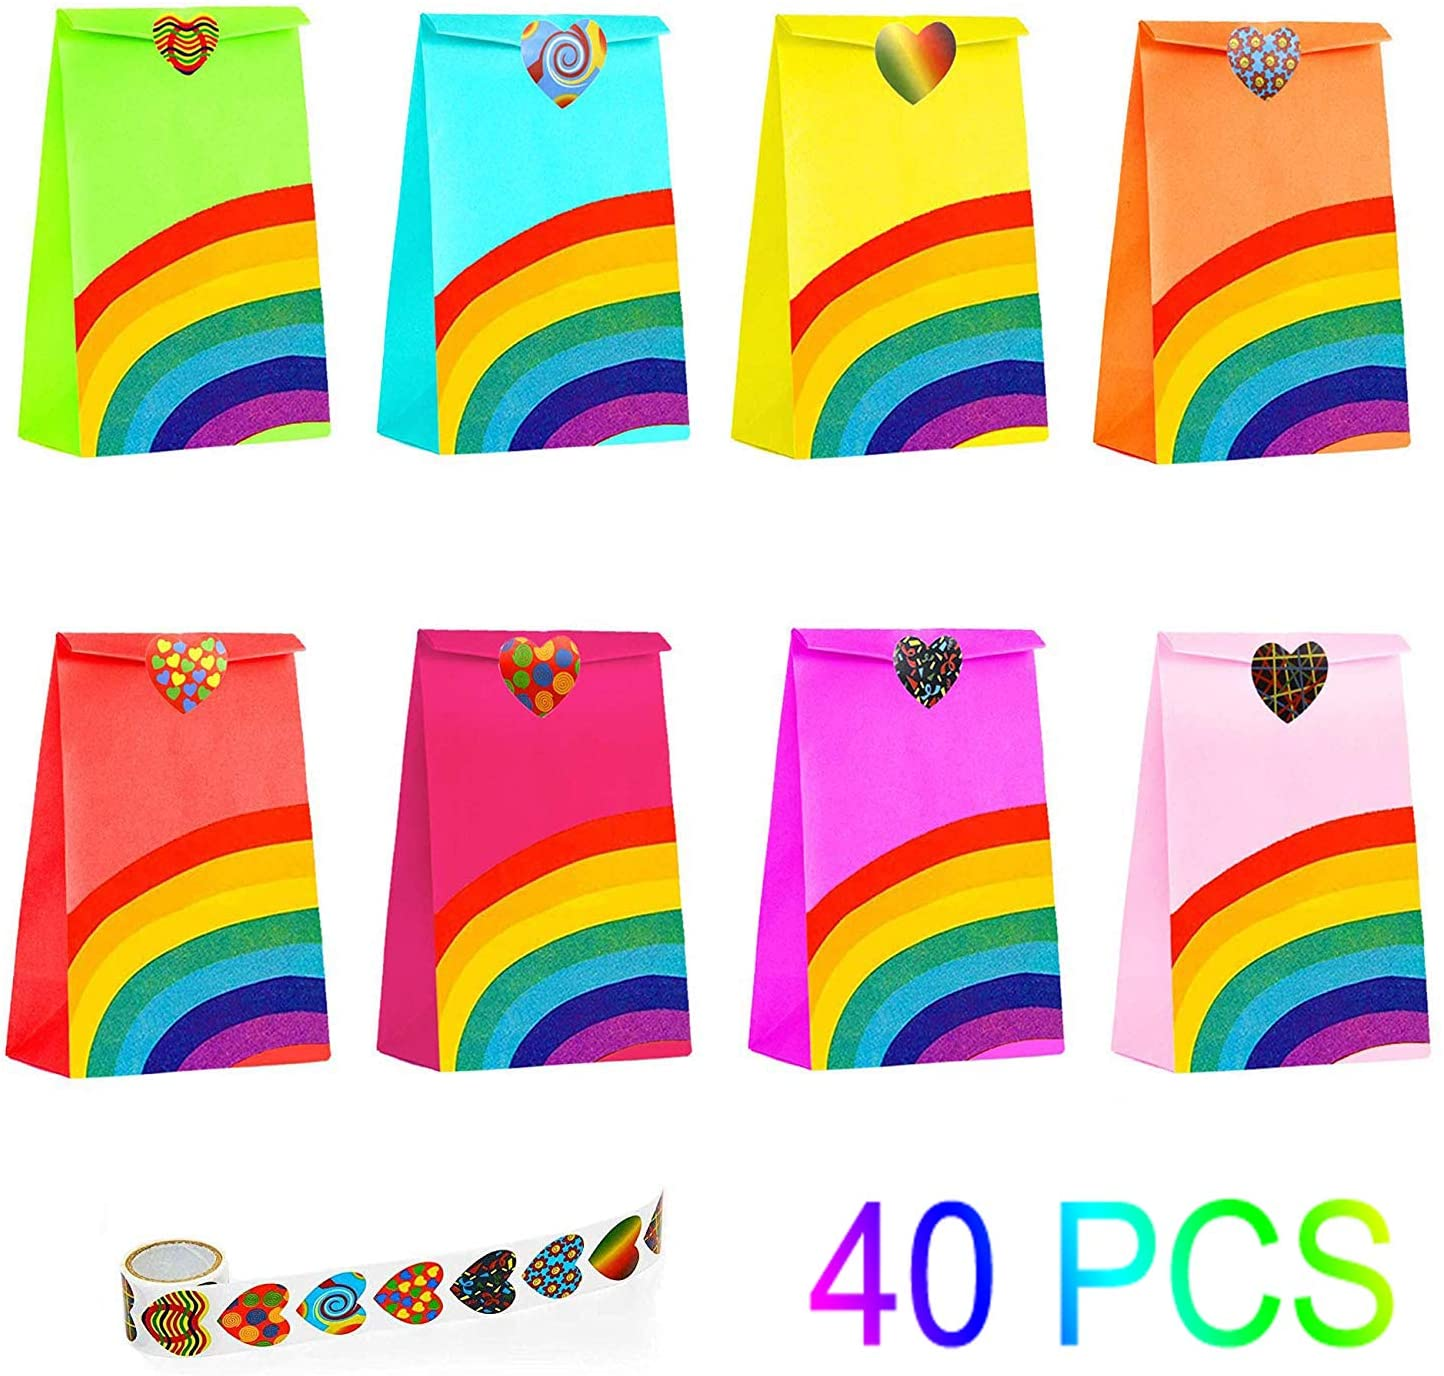 40 Pieces Rainbow Party Bags with 100 Heart Stickers Kraft Paper Favor Bag Paper Candy Goody Small Bag ,Kids Birthday Parties, Wedding, Carnivals, Celebrations, Classroom Halloween Party Supplies Prime